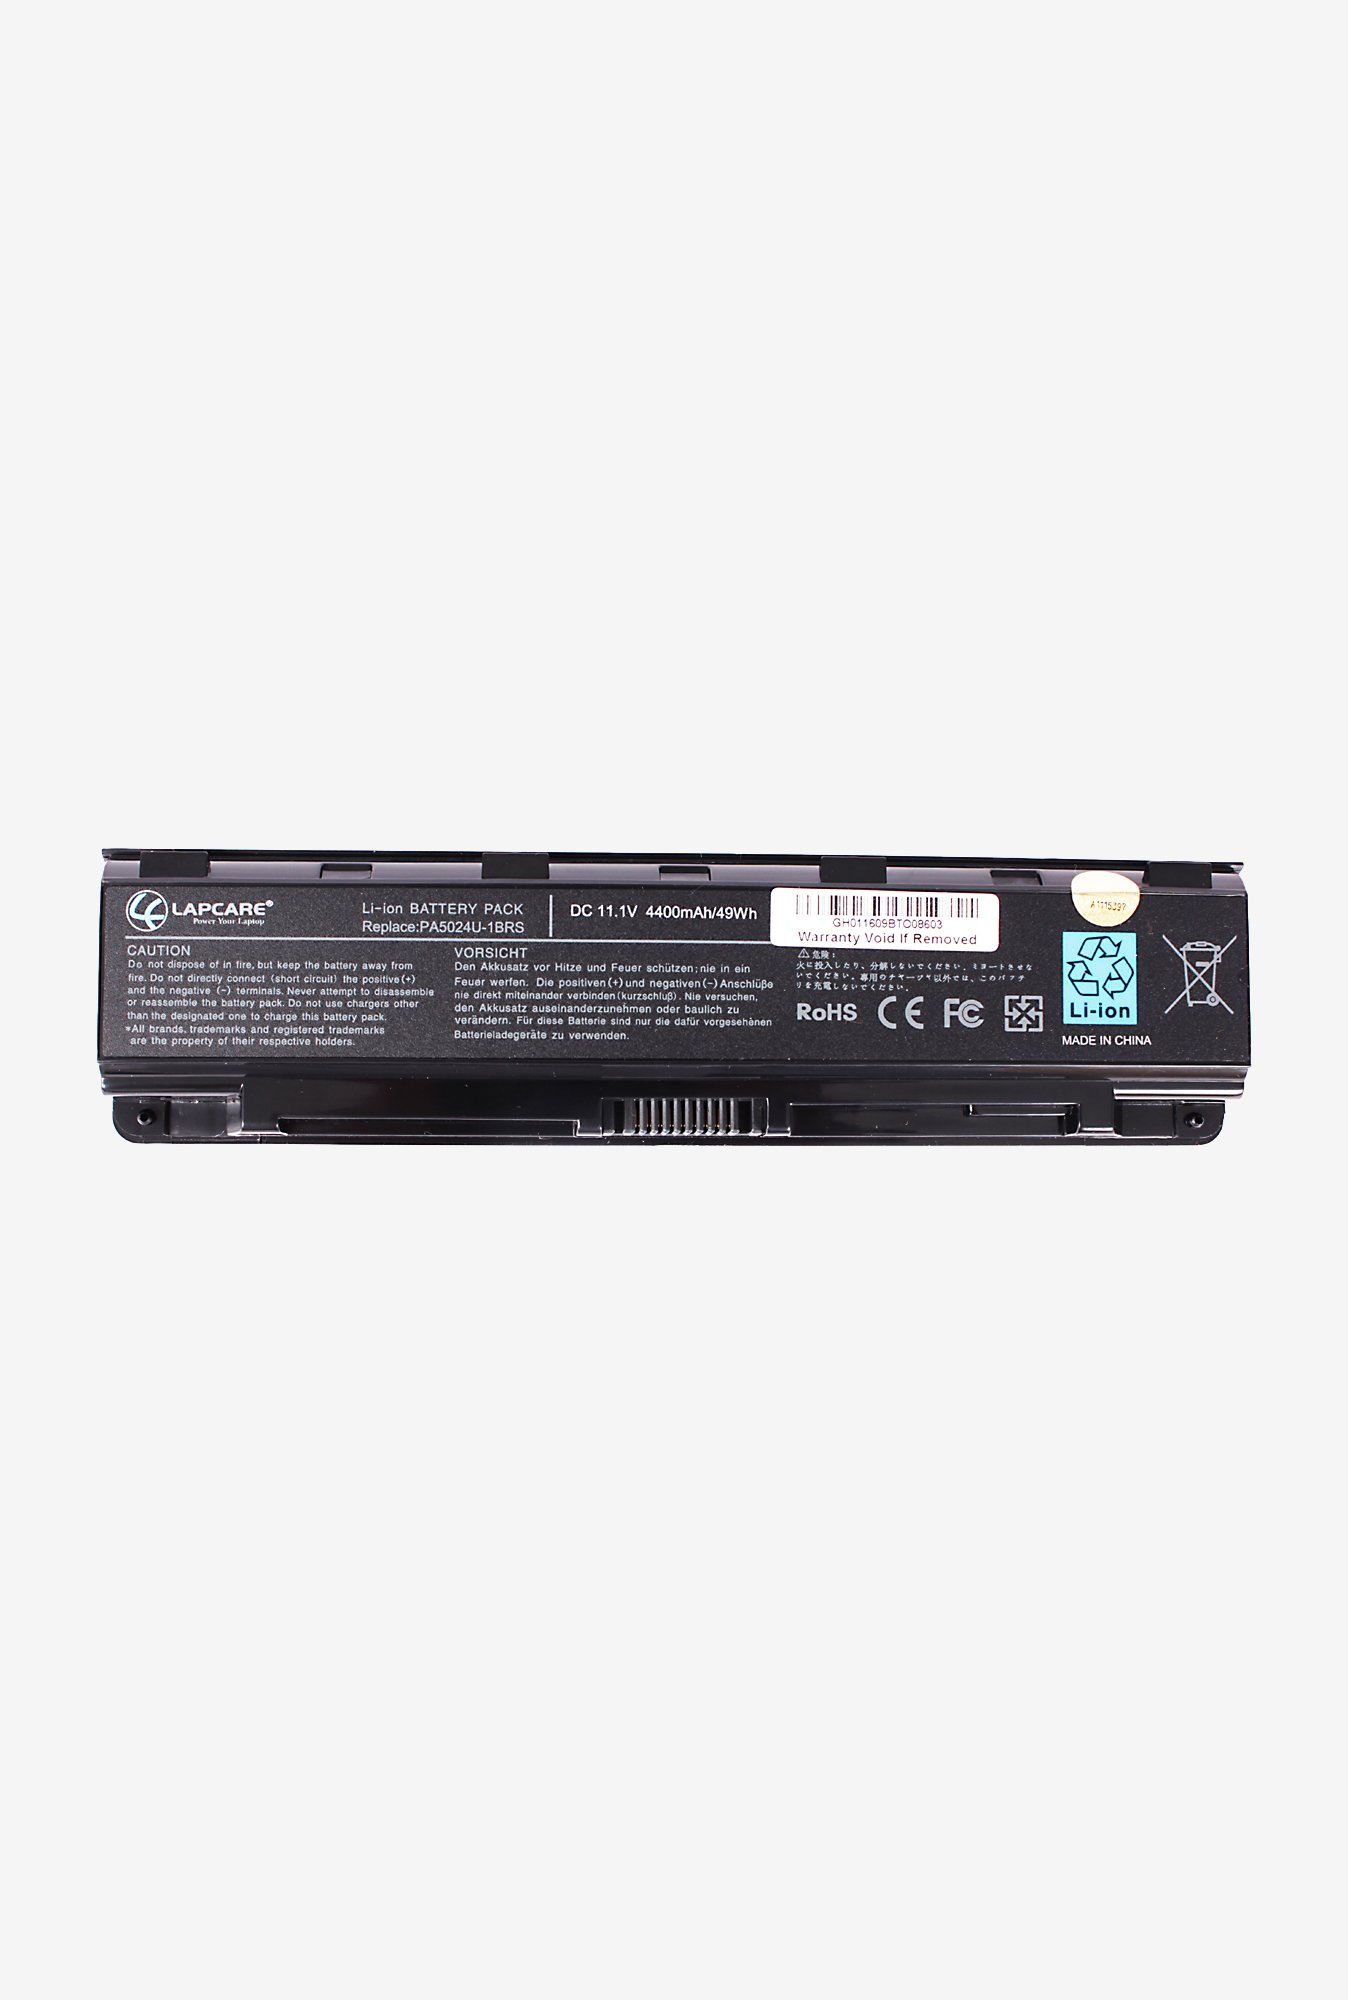 Lapcare PA5024U 4400mAh 6 Cell Laptop Battery (Black)